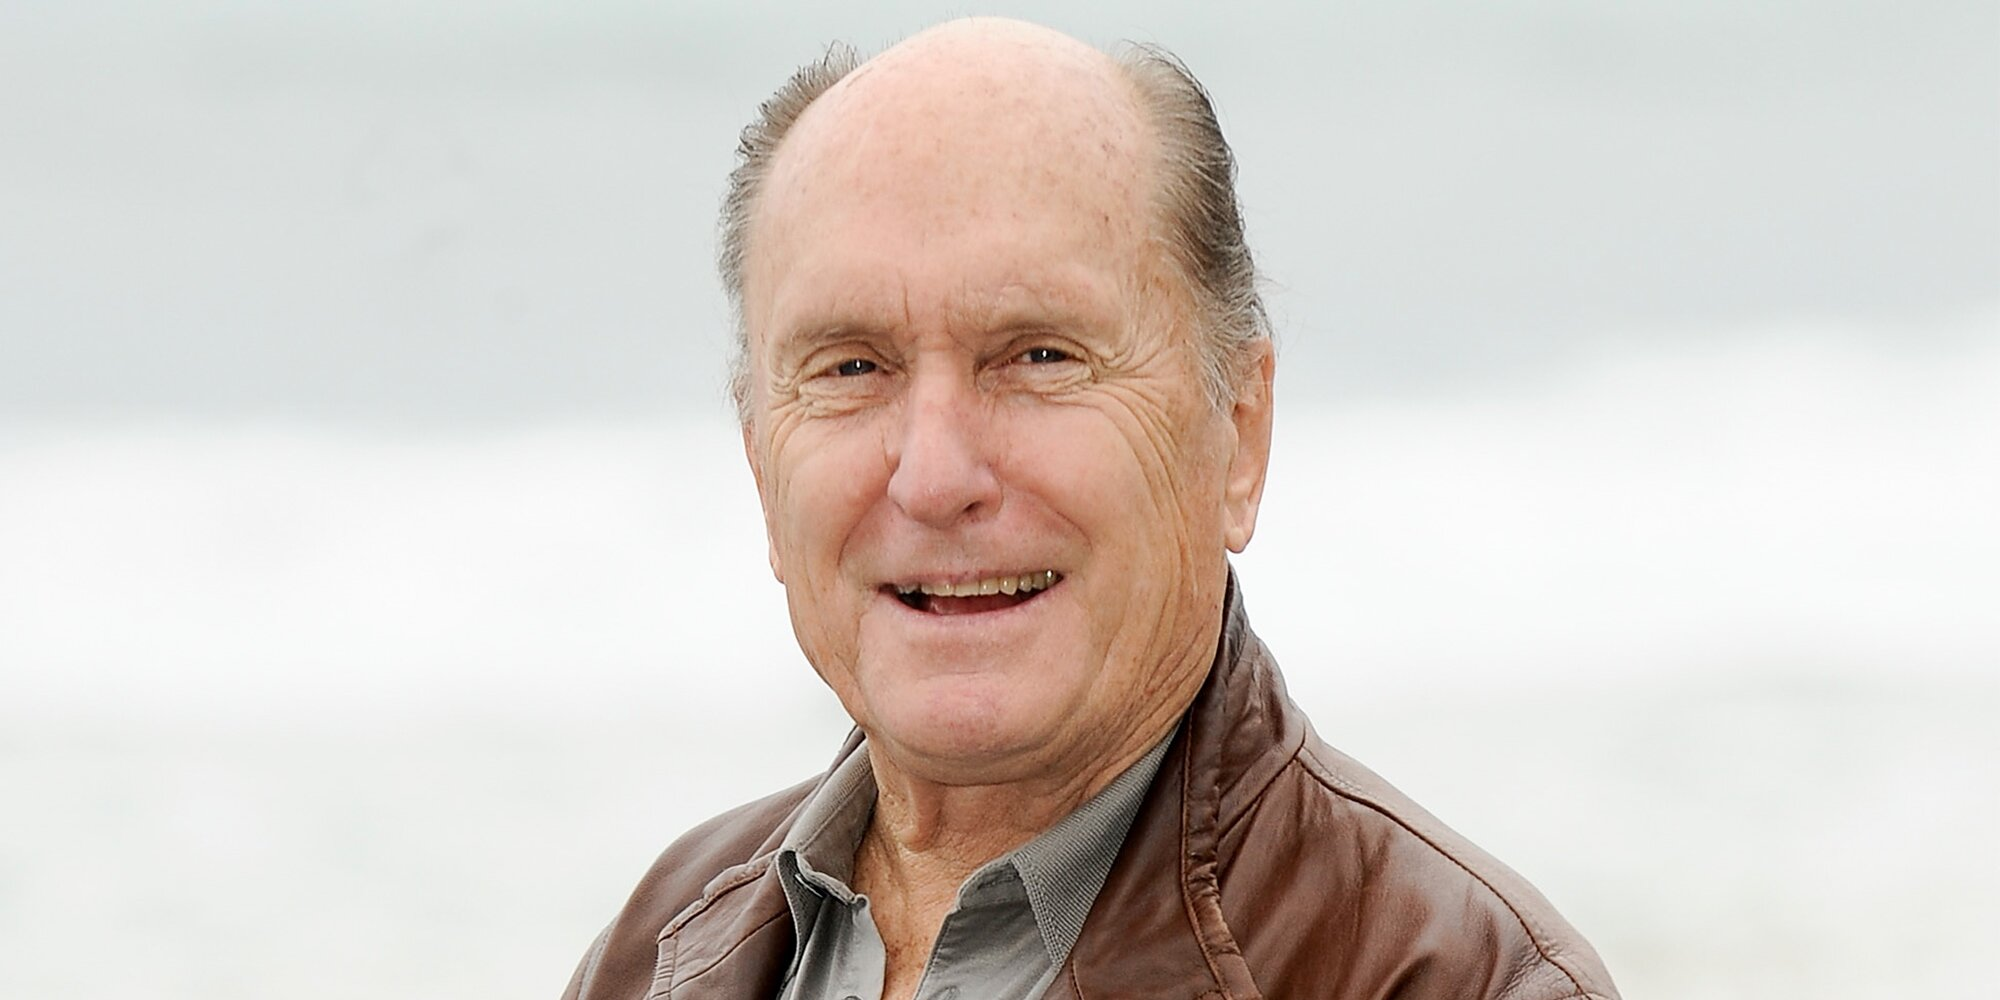 Robert Duvall Jokes About Being 90: 'I Don't Know If I Love Any of It'